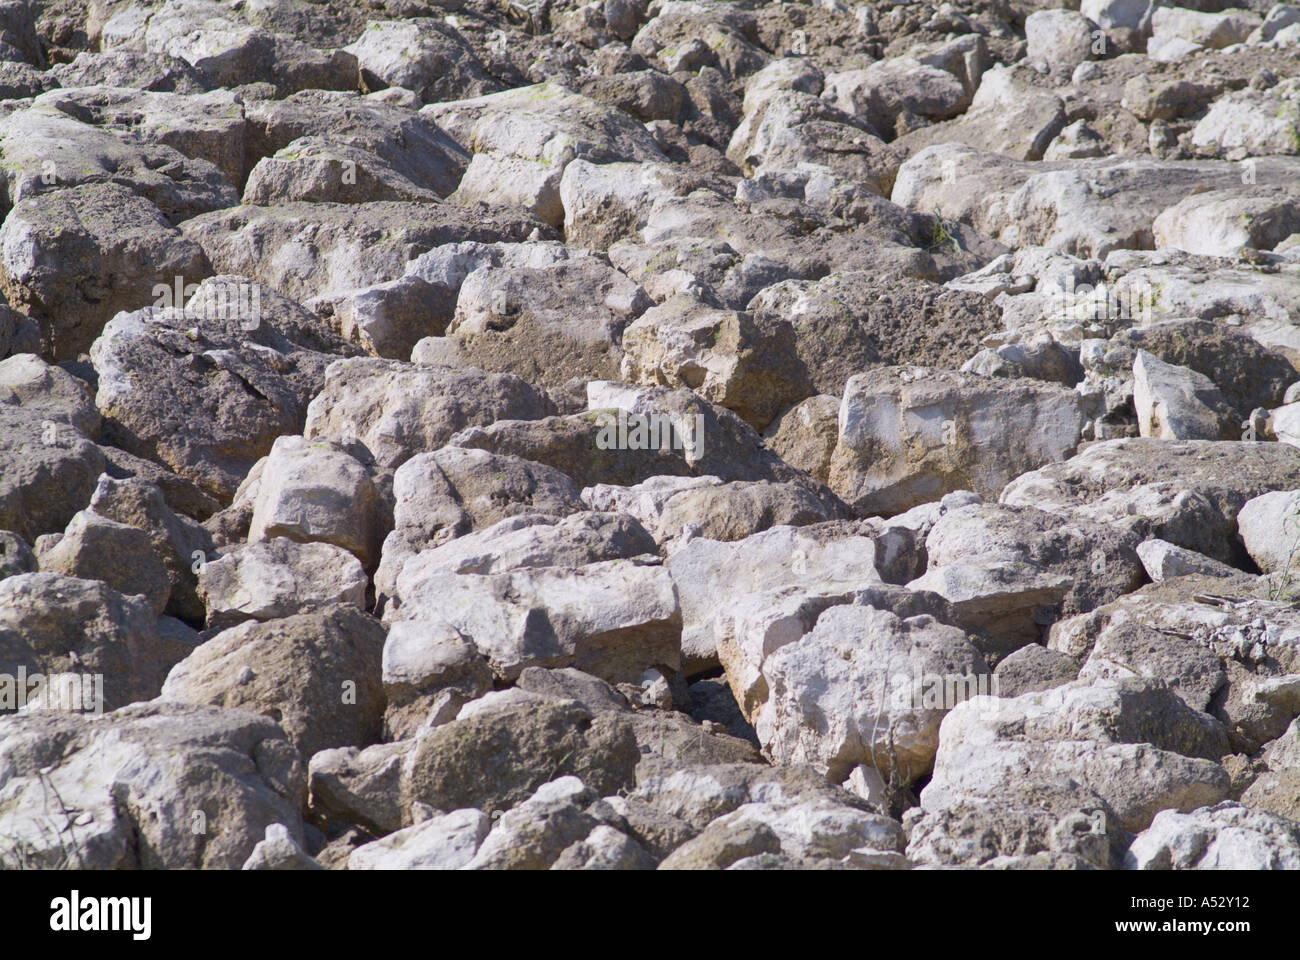 rocks backgrounds textures rough rocky stones - Stock Image